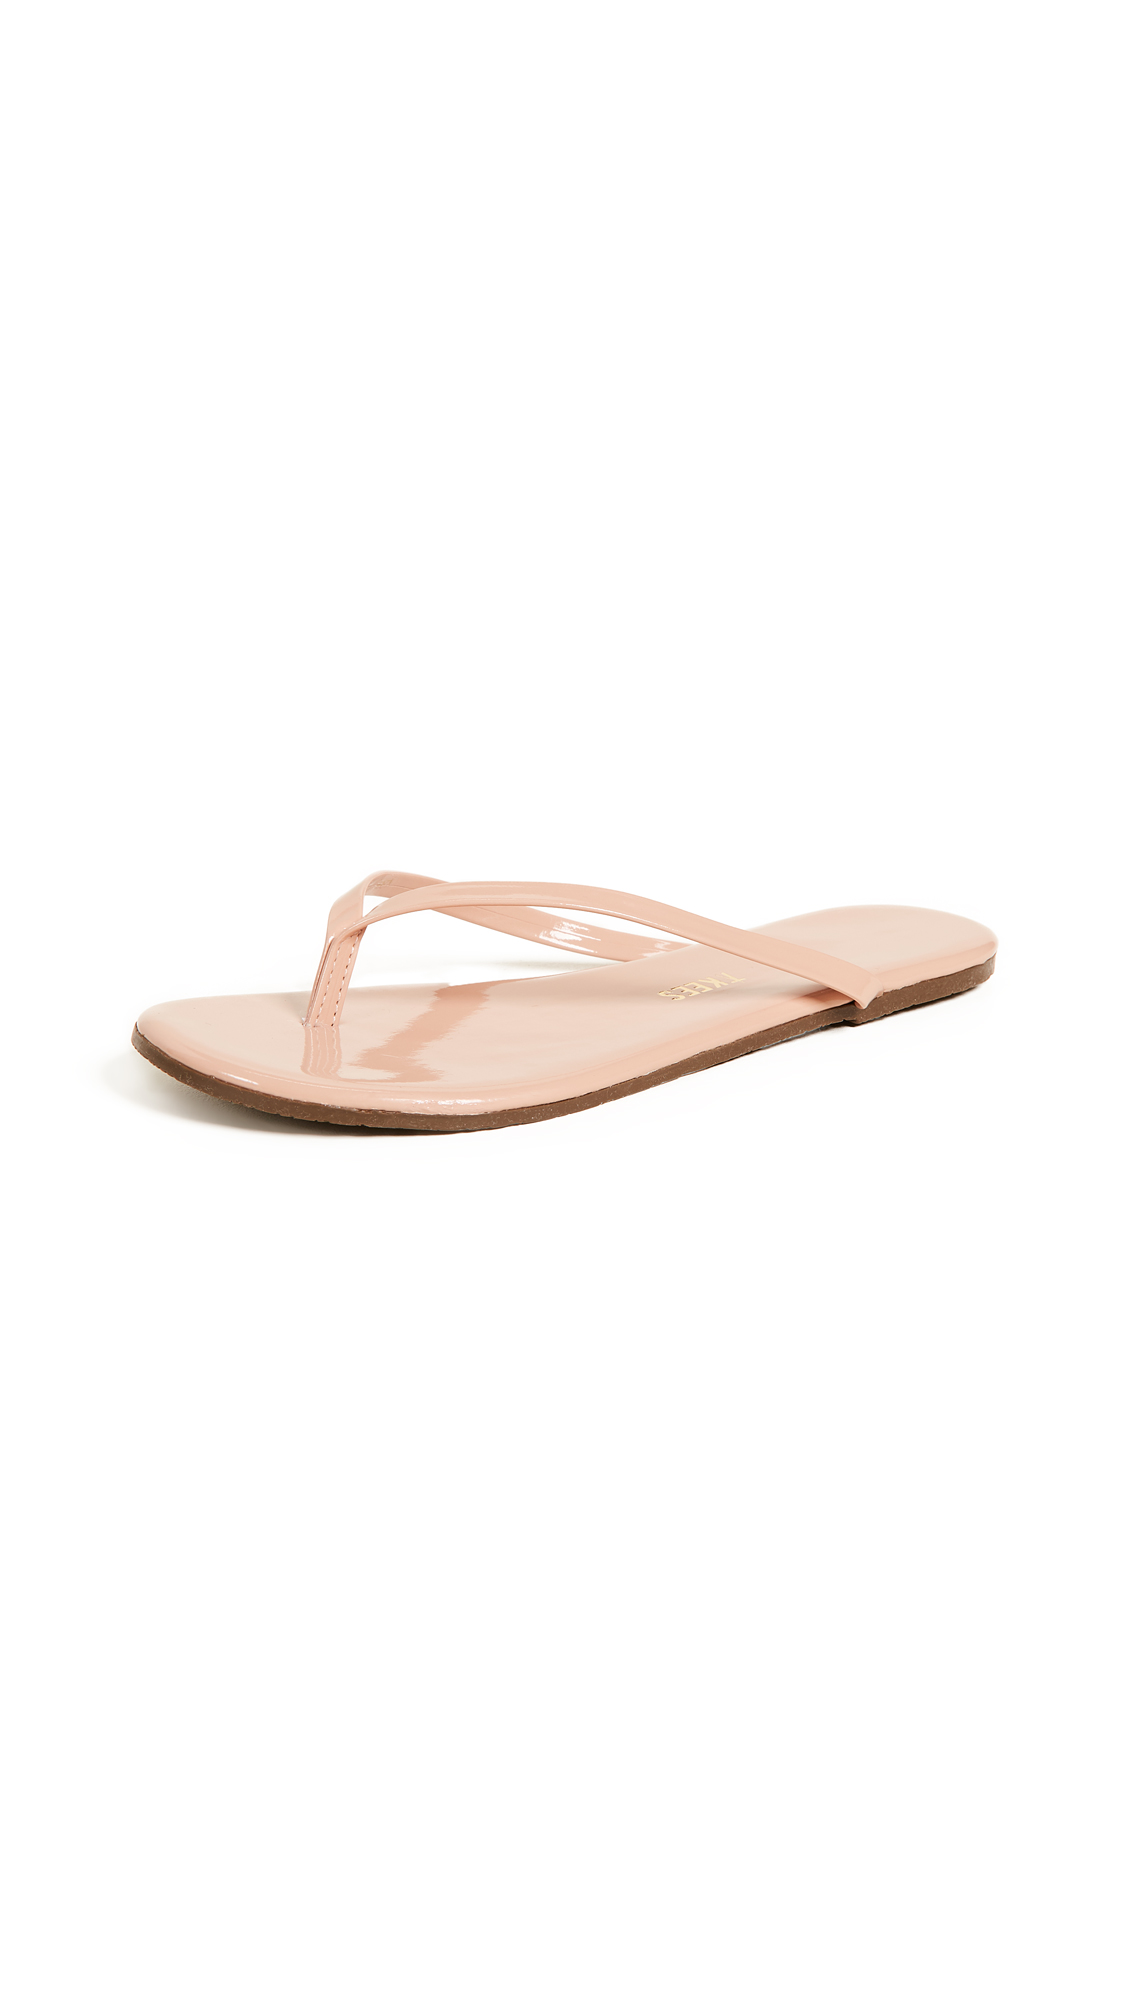 TKEES Foundations Gloss Flip Flops - Nude Beach